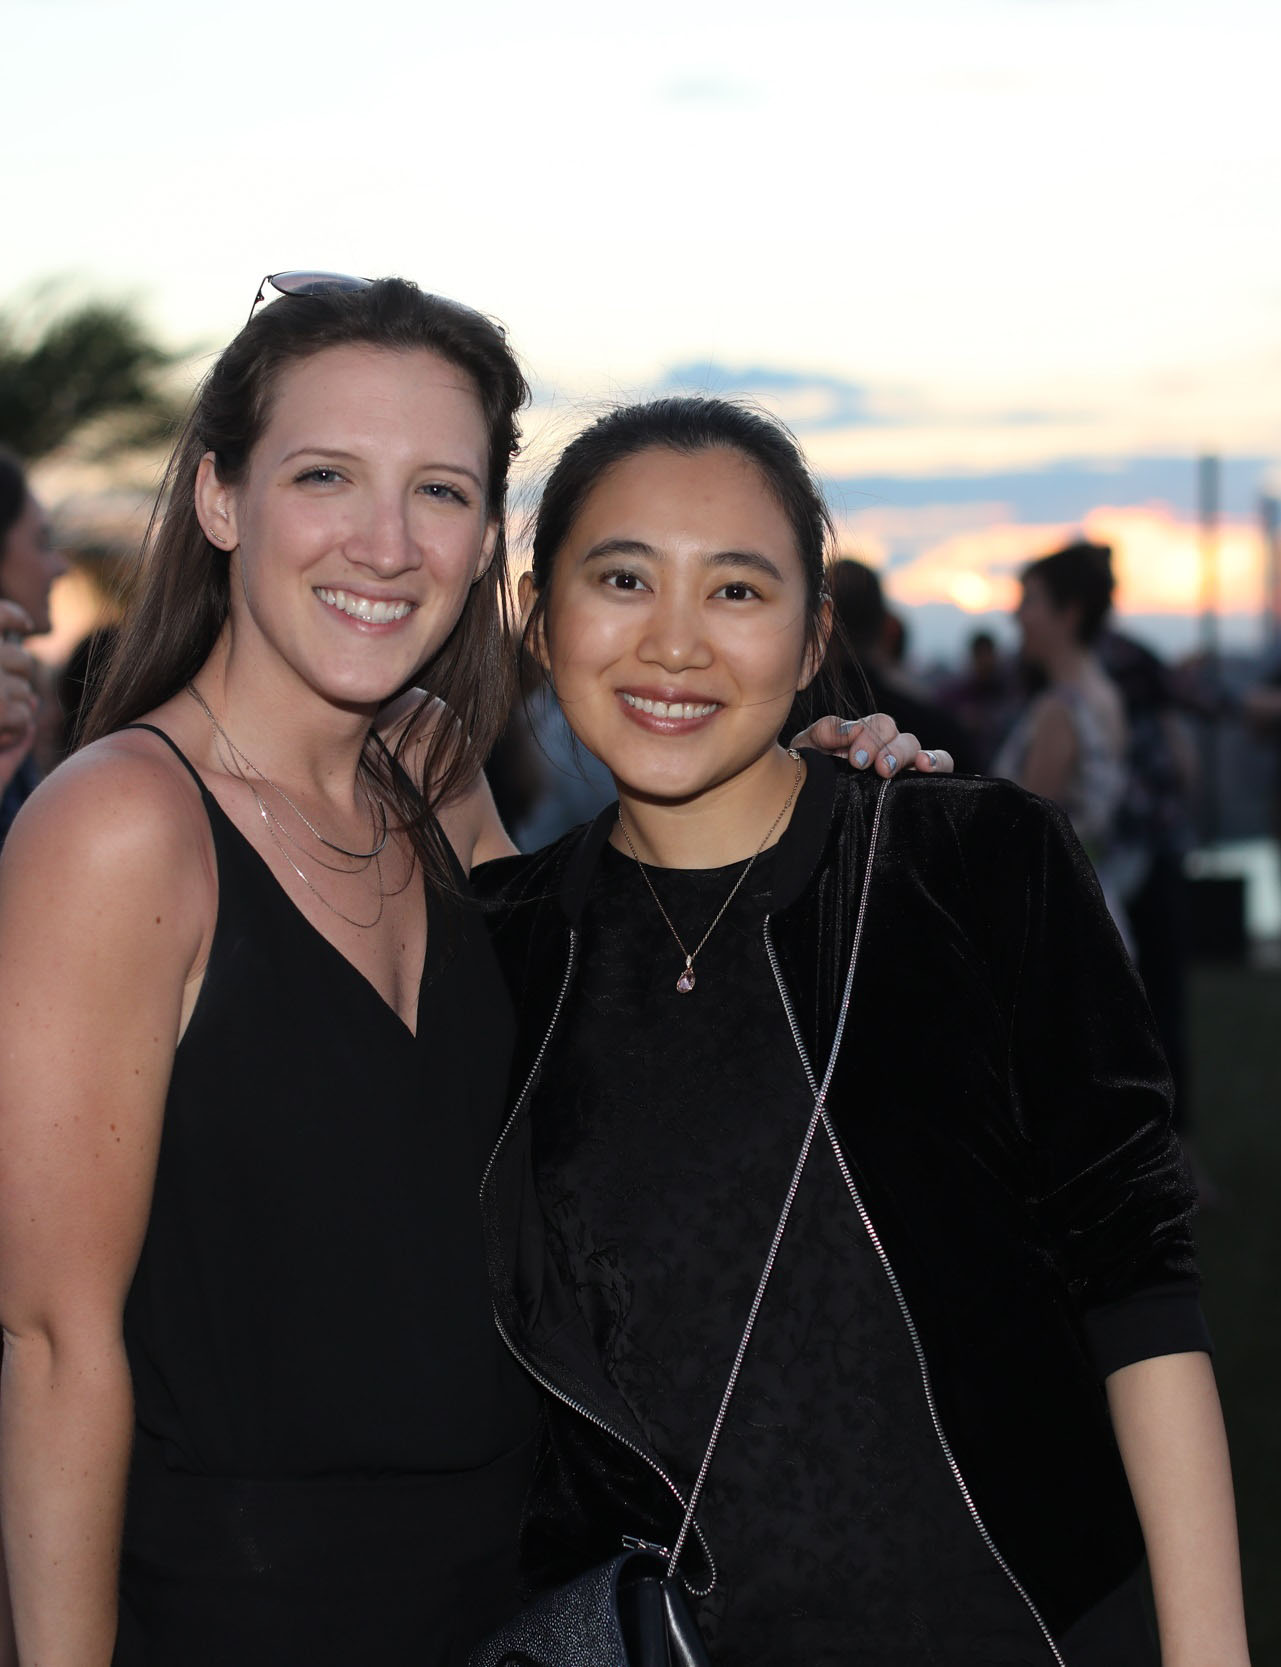 The outgoing and incoming student representatives to the ASID New York Metro board, Bonnie Hoeker and Lucy Wang